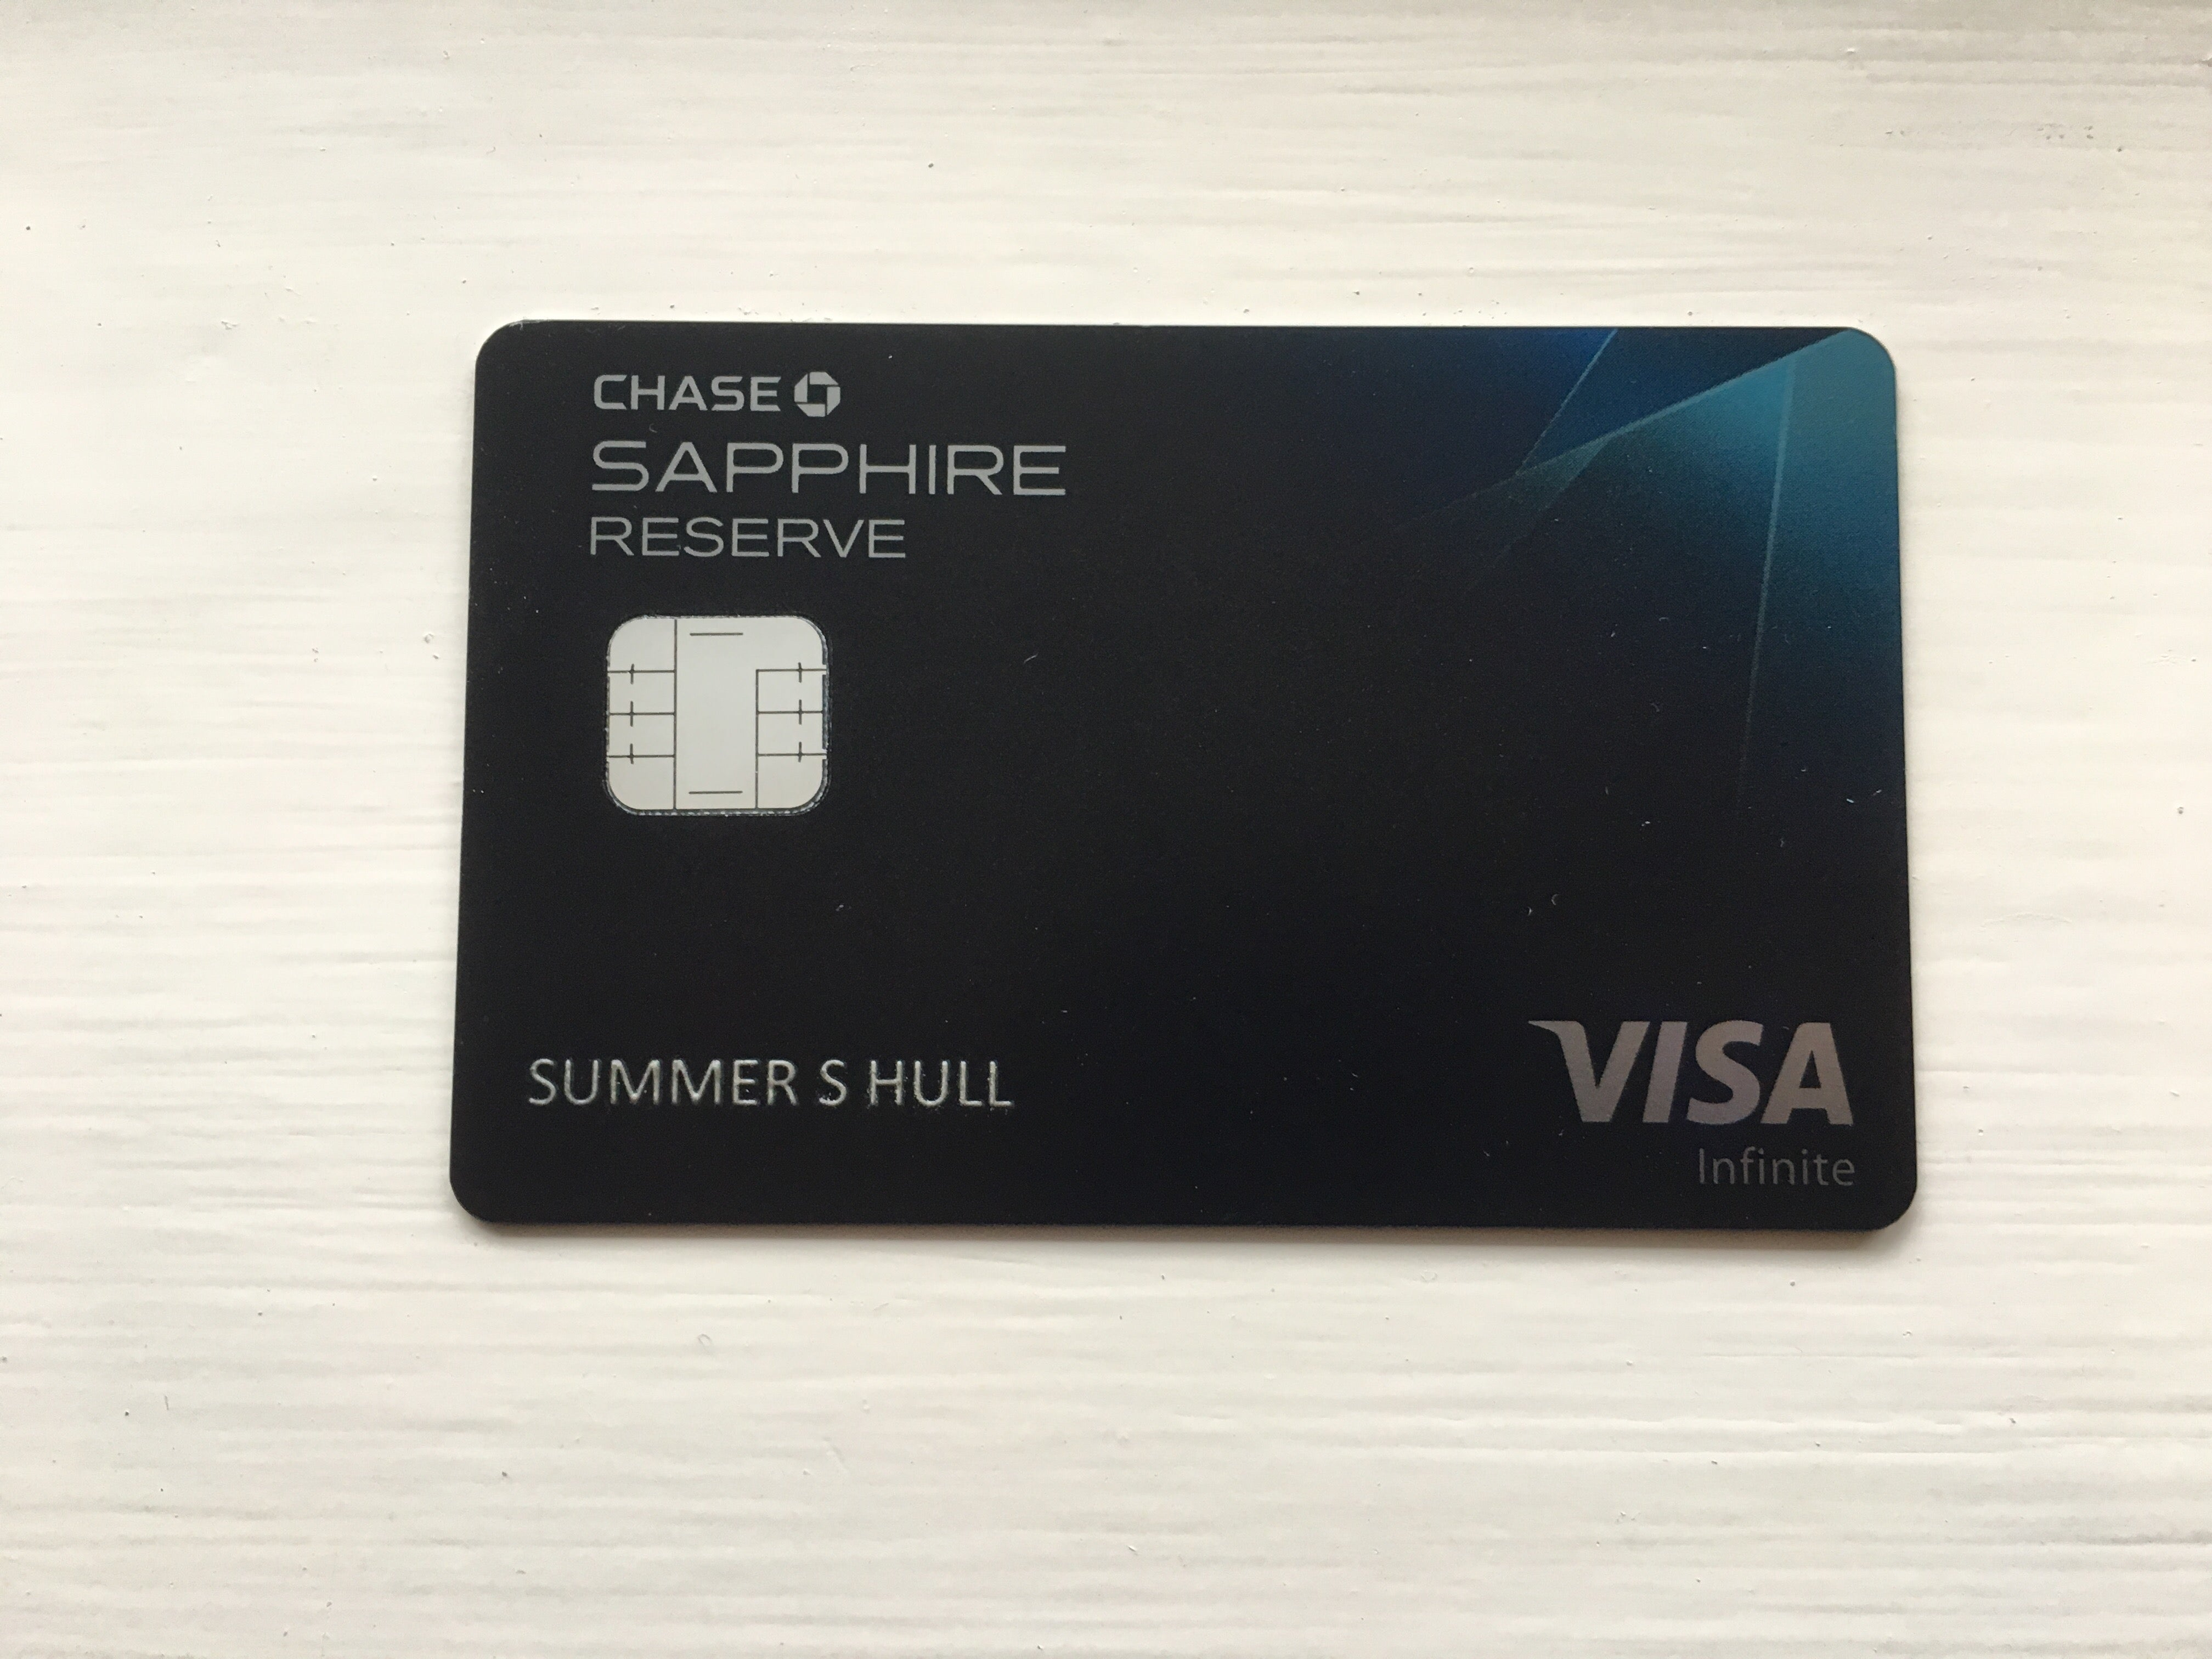 How Long Does it Take to Get a Chase Sapphire Reserve Card